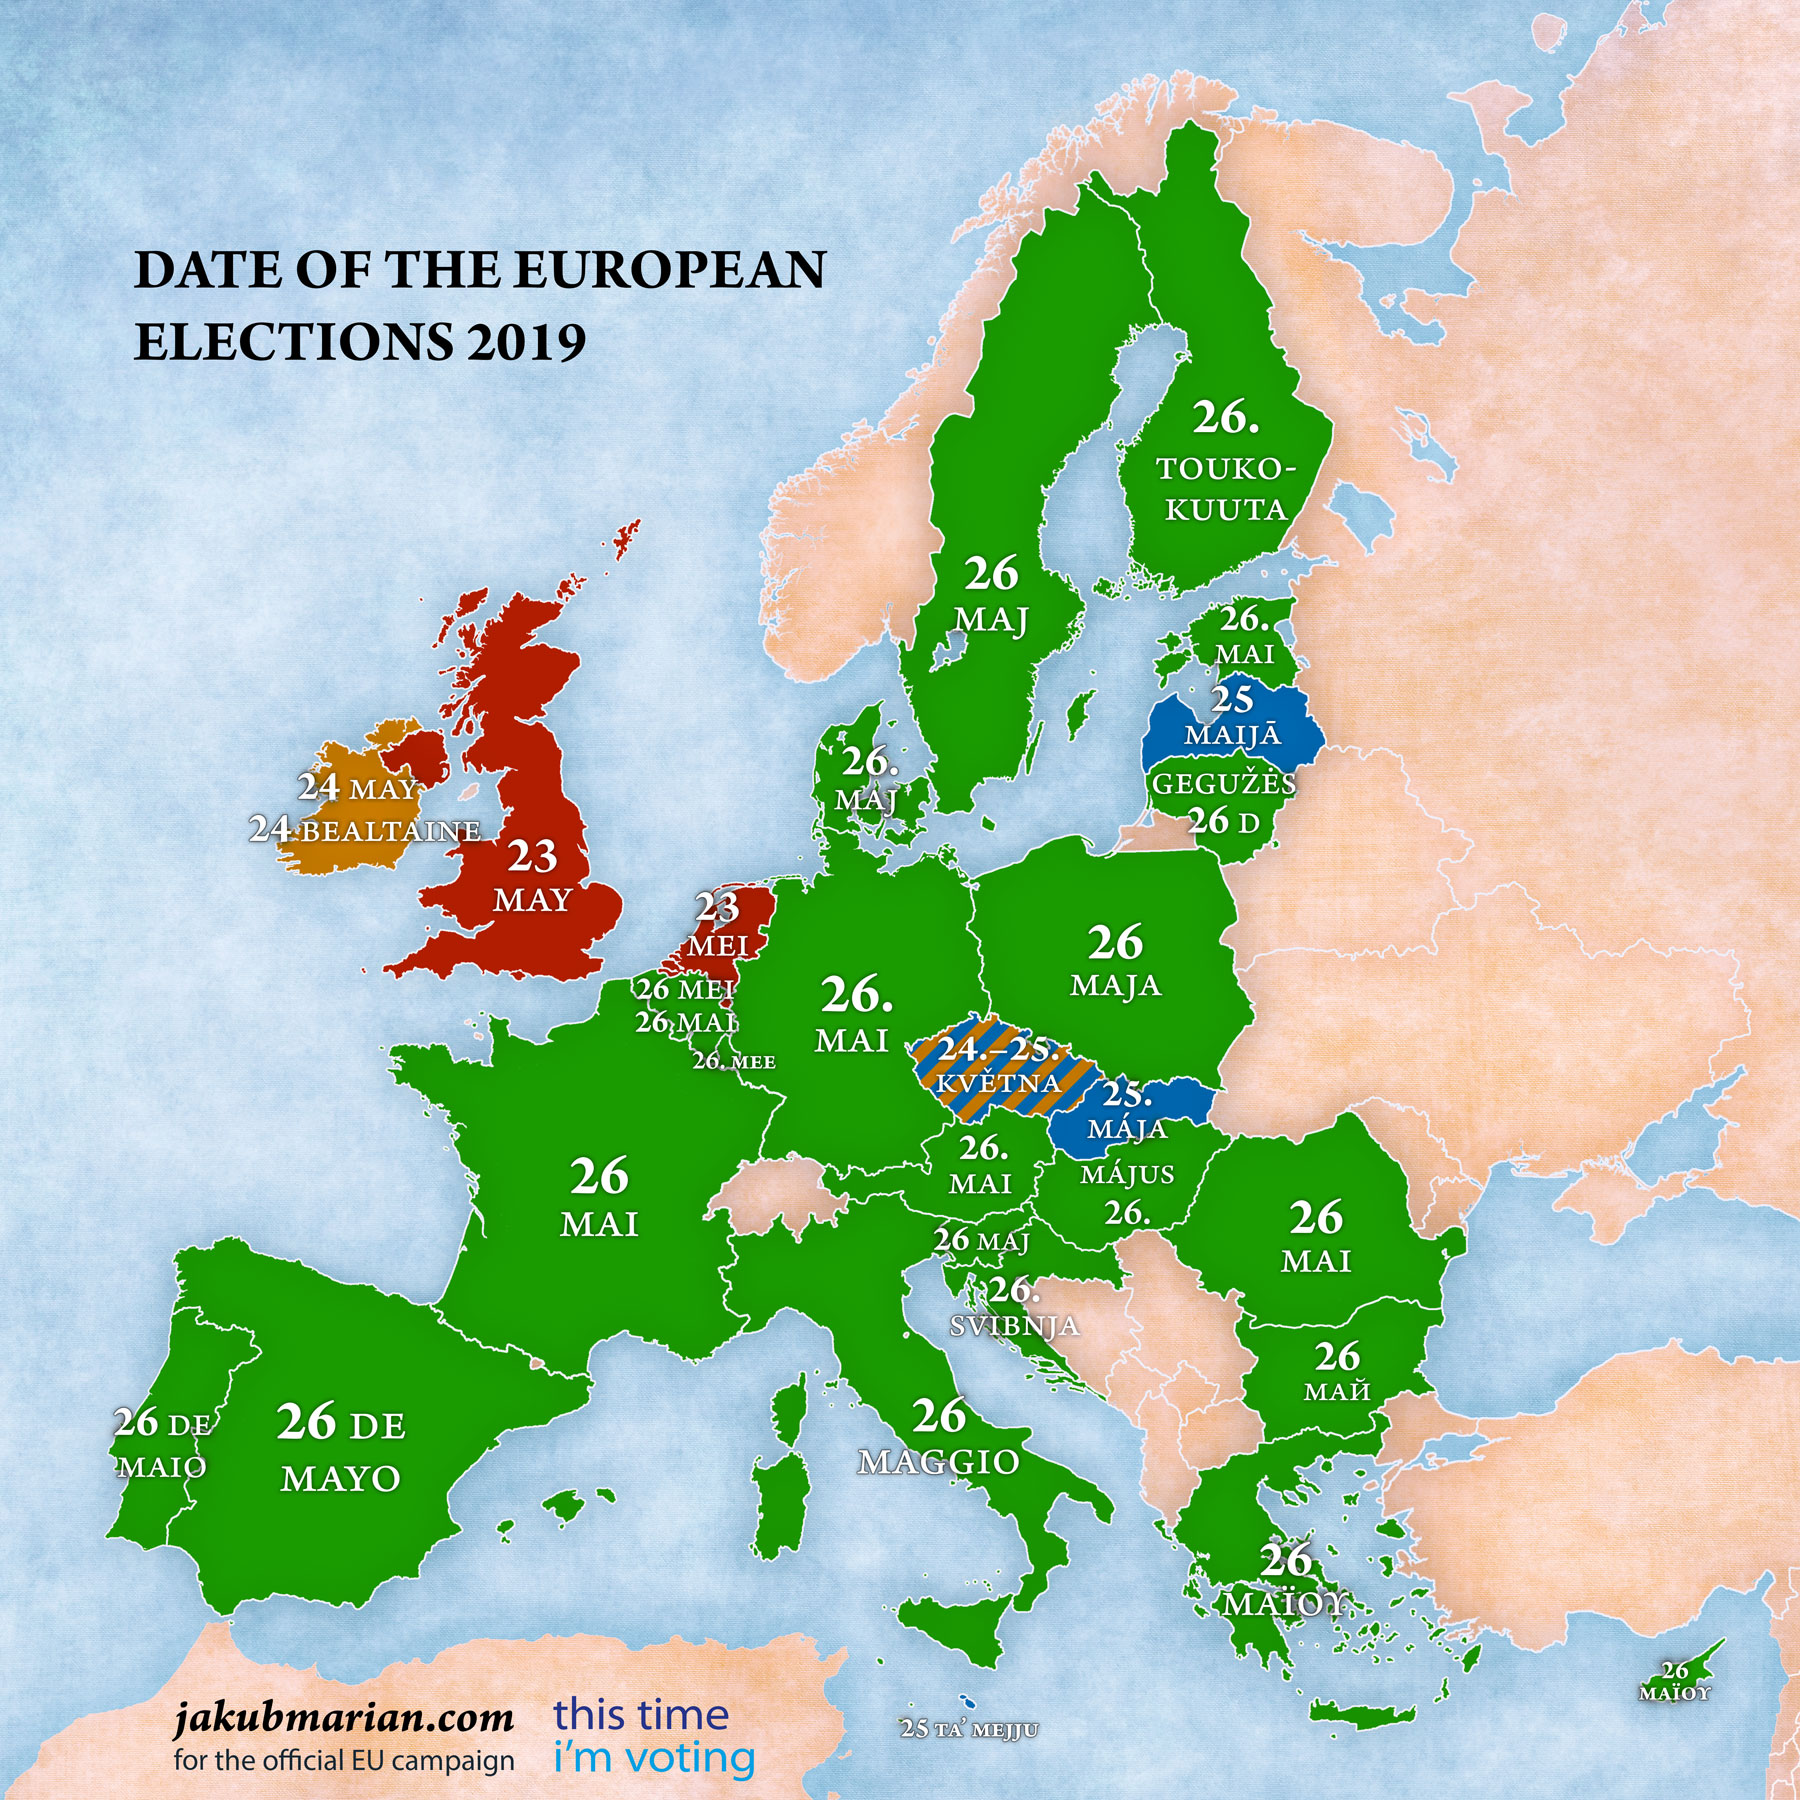 ep-election-date.jpg